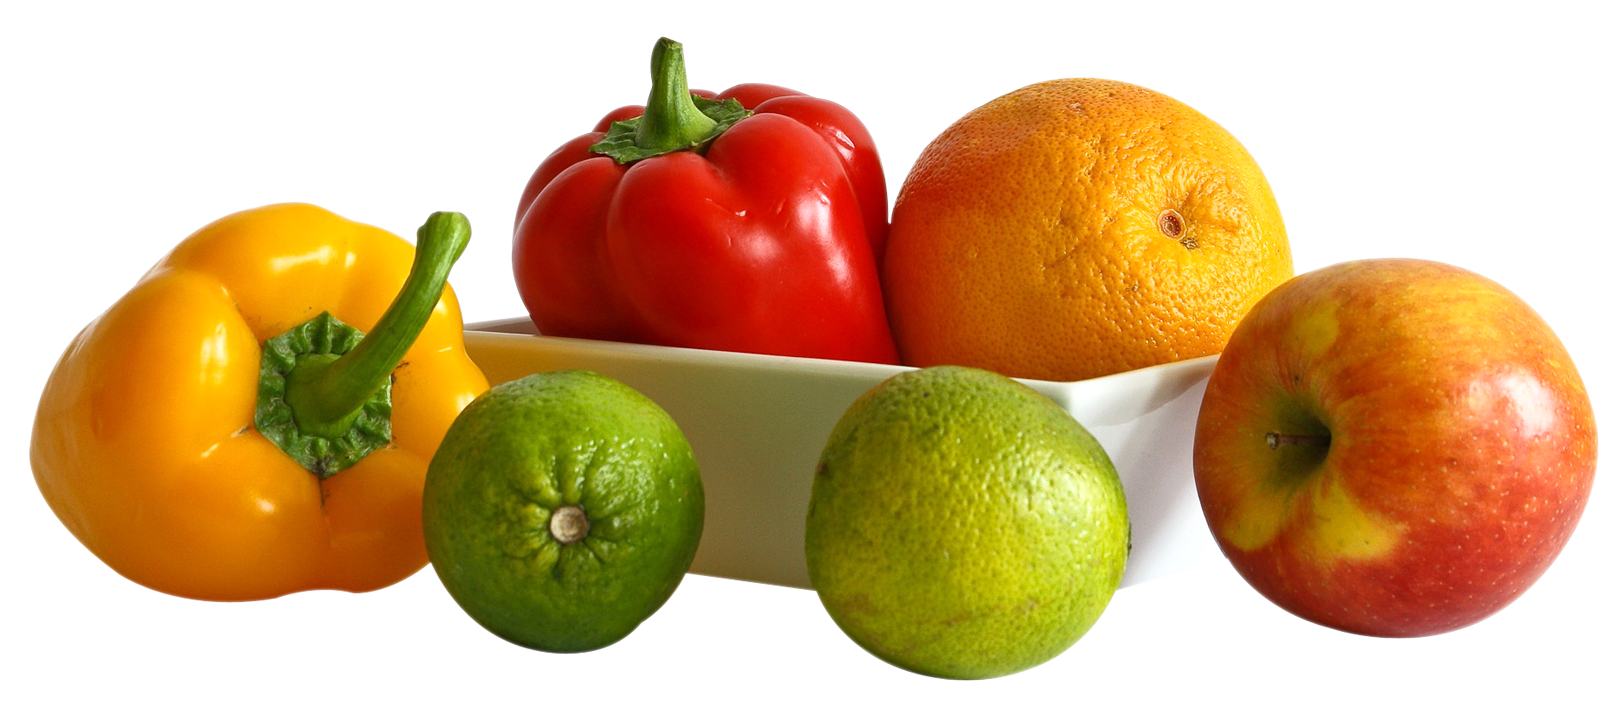 Fruits and vegetables png. Image pngpix